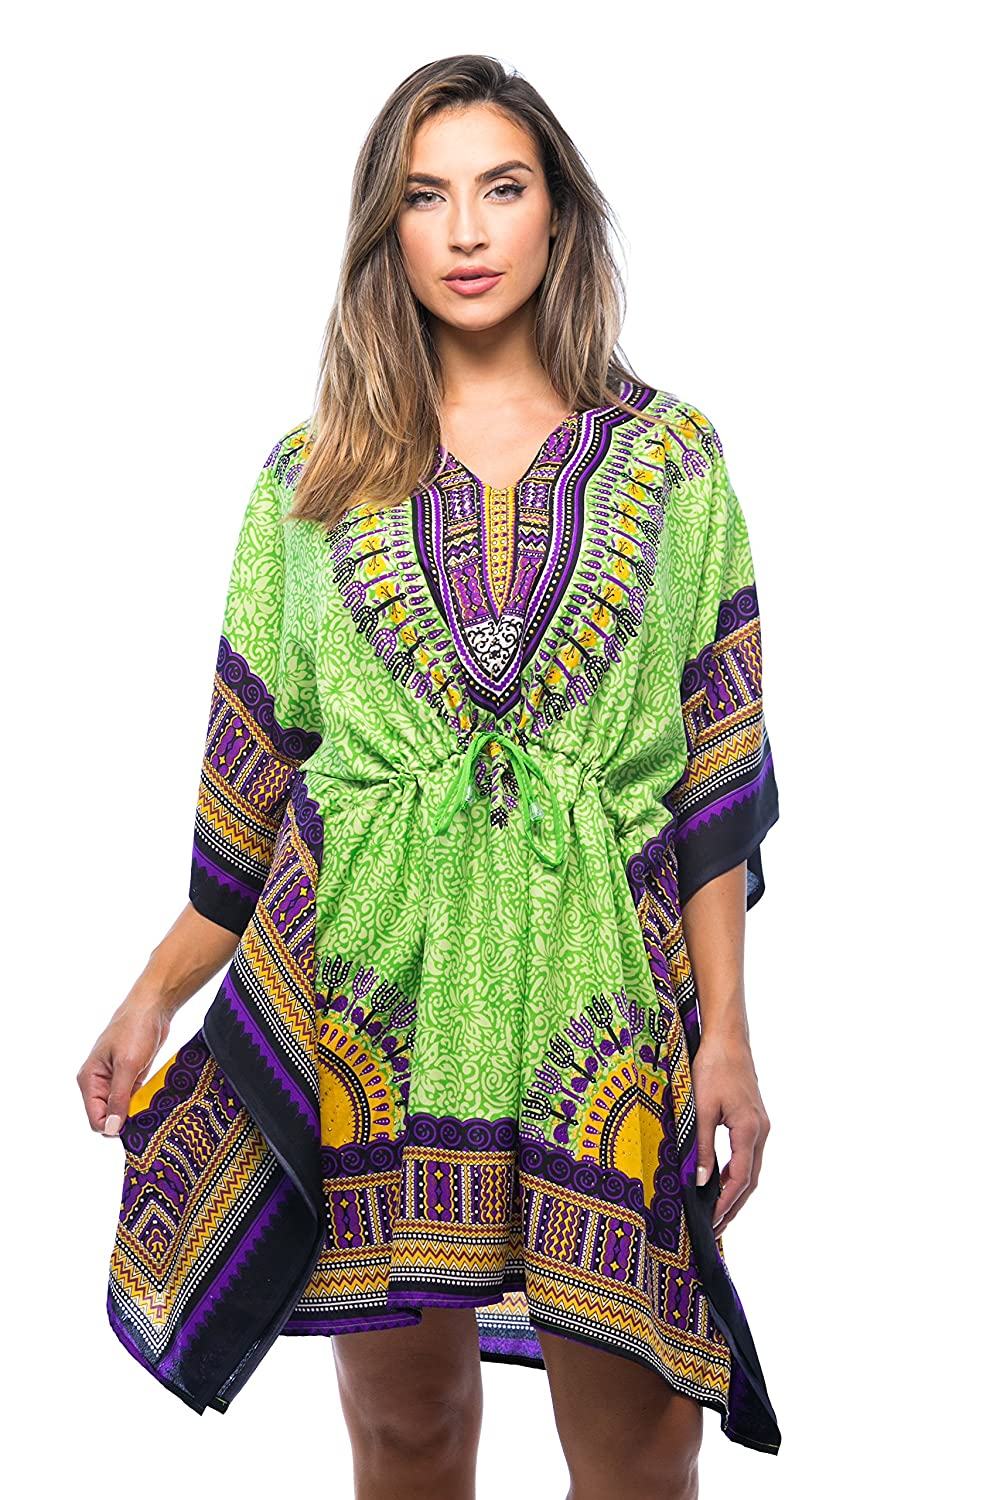 5f5095ad52f DASHIKI CHIC  Get your fab on in Riviera Sun dashiki African caftans for  women. With a stylish V-neck for a flirty peek of skin